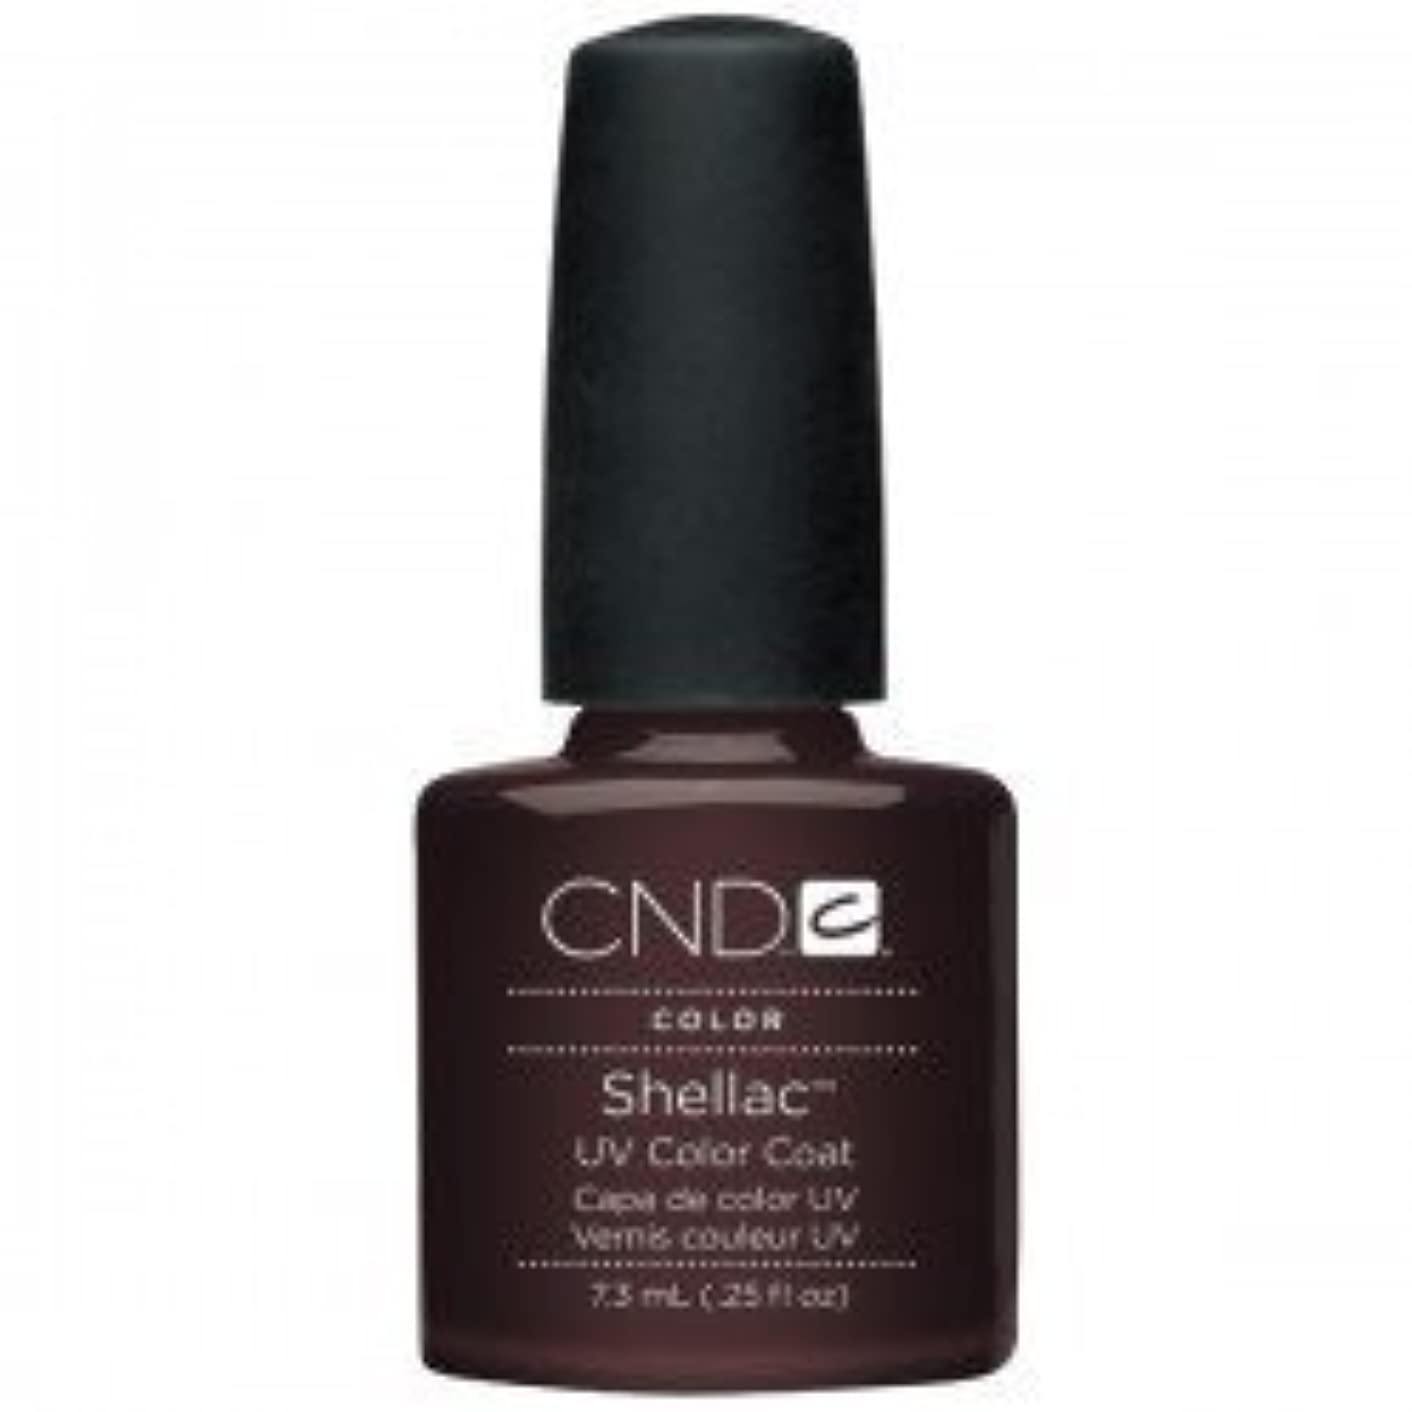 集中露骨な間違いなくNew CND Creative Shellac UV3 Nail Power Polish - Fedora 7.3ml by CND Creative Nail Designs